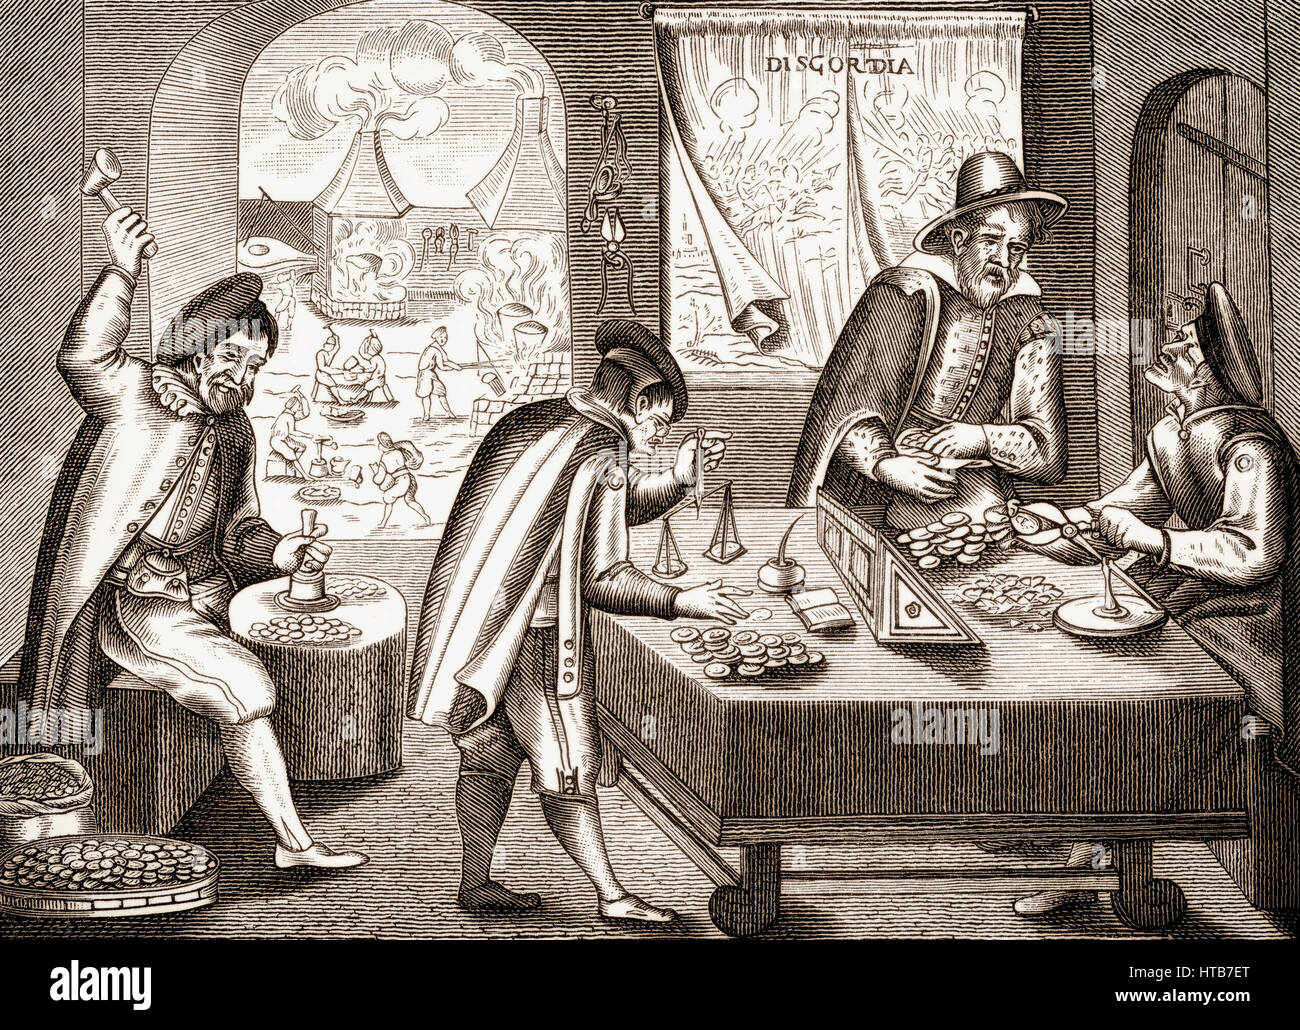 A leaflet on the Tipper and See-saw or Kipper und Wipper, German Financial Meltdown of 1621-23 - Stock Image